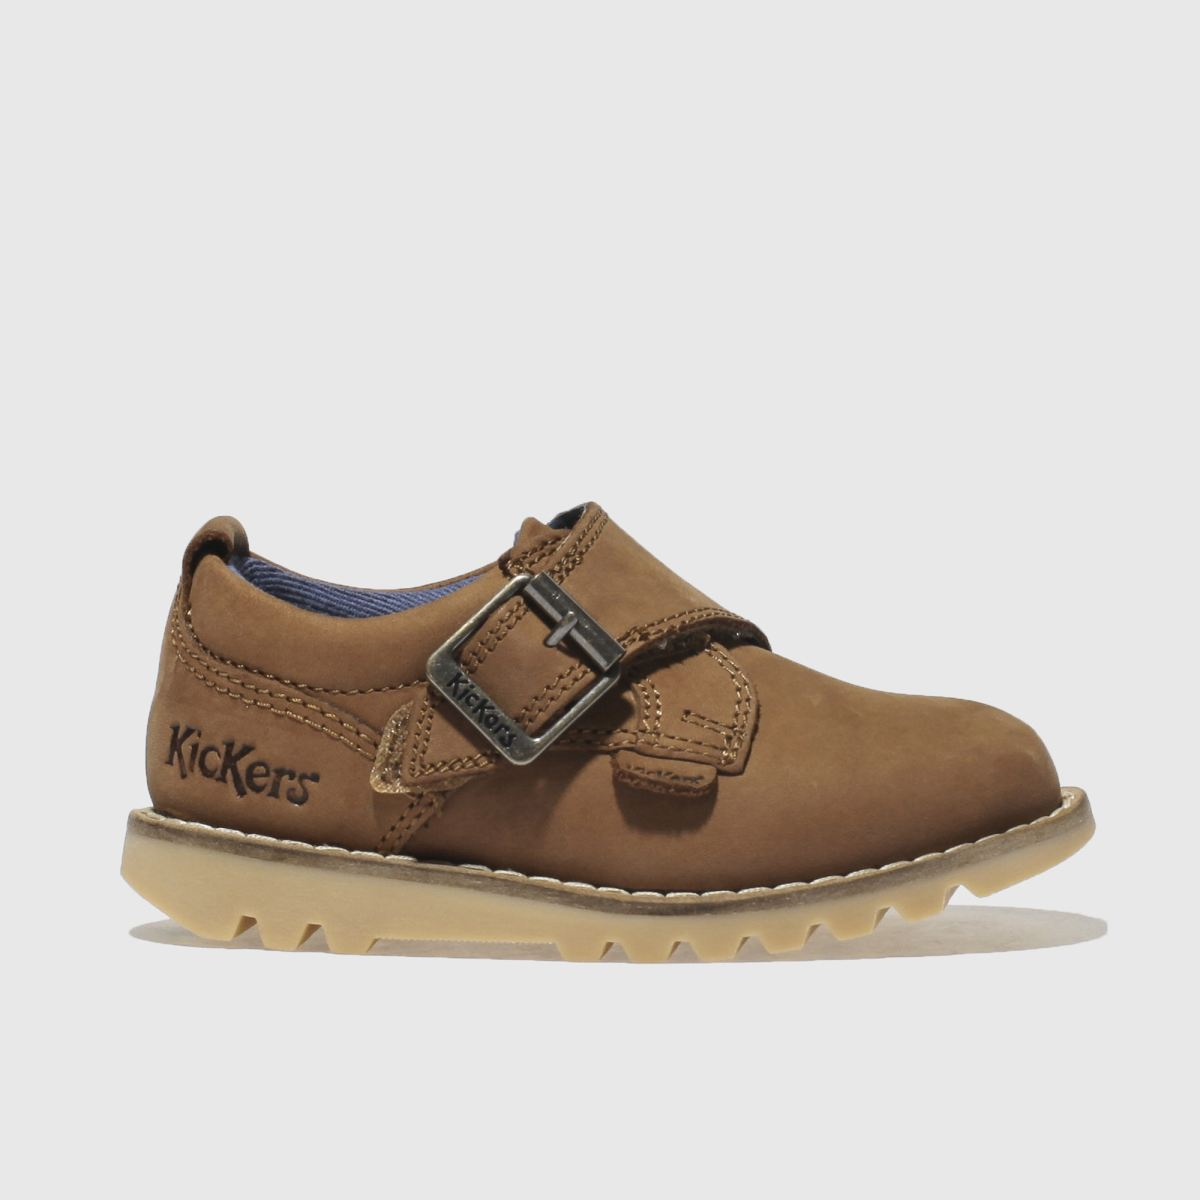 Kickers Tan Kymbo Monk Strap Boots Toddler